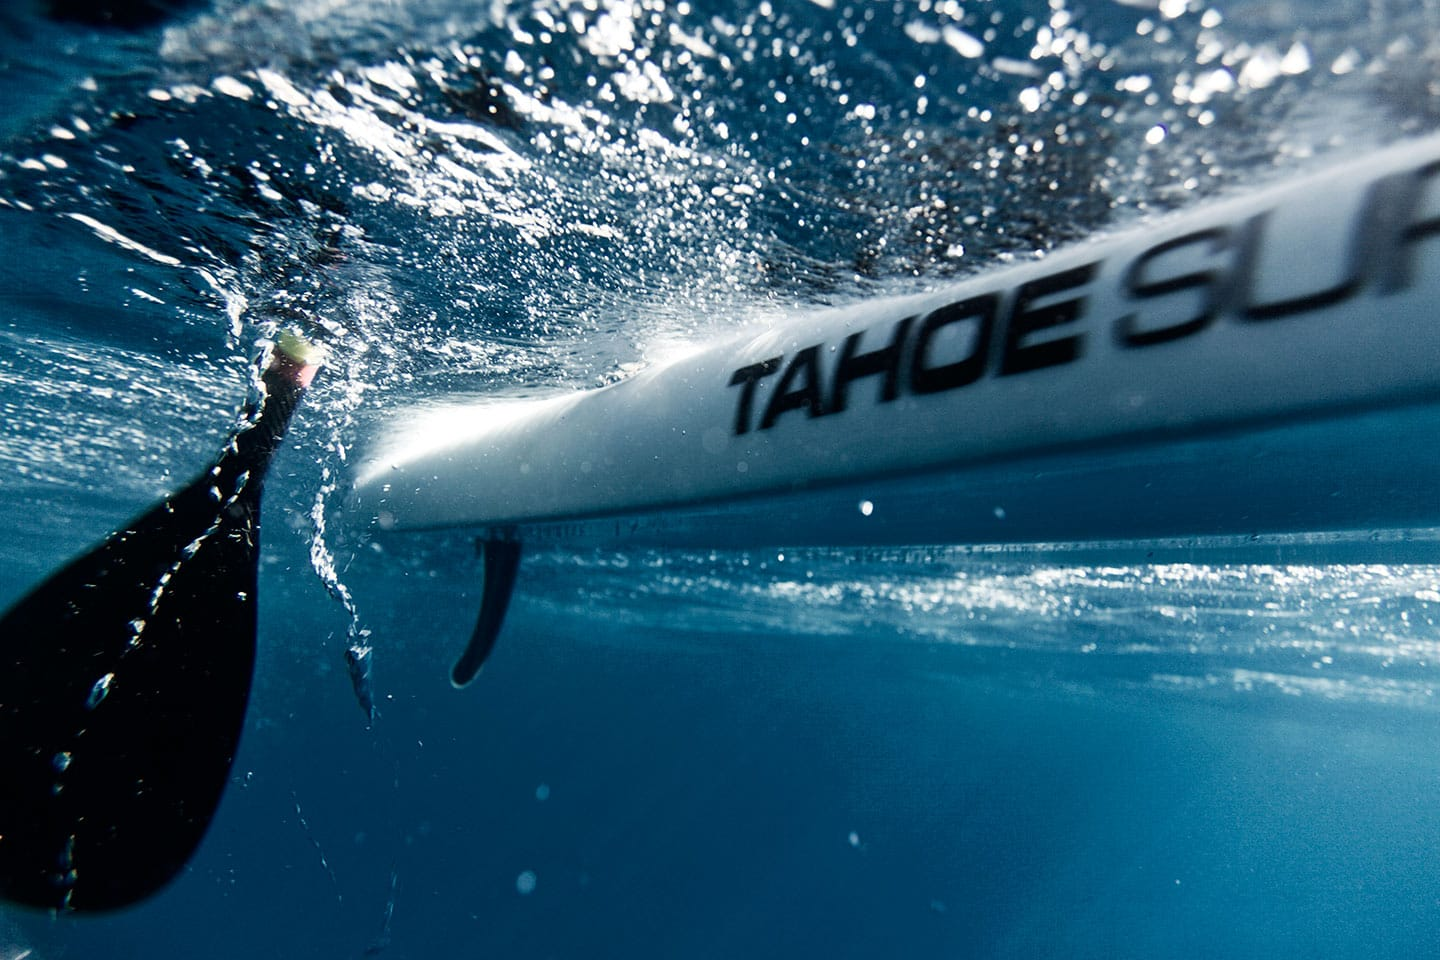 Underwater Image Surf Kayak and Paddle Waves Above